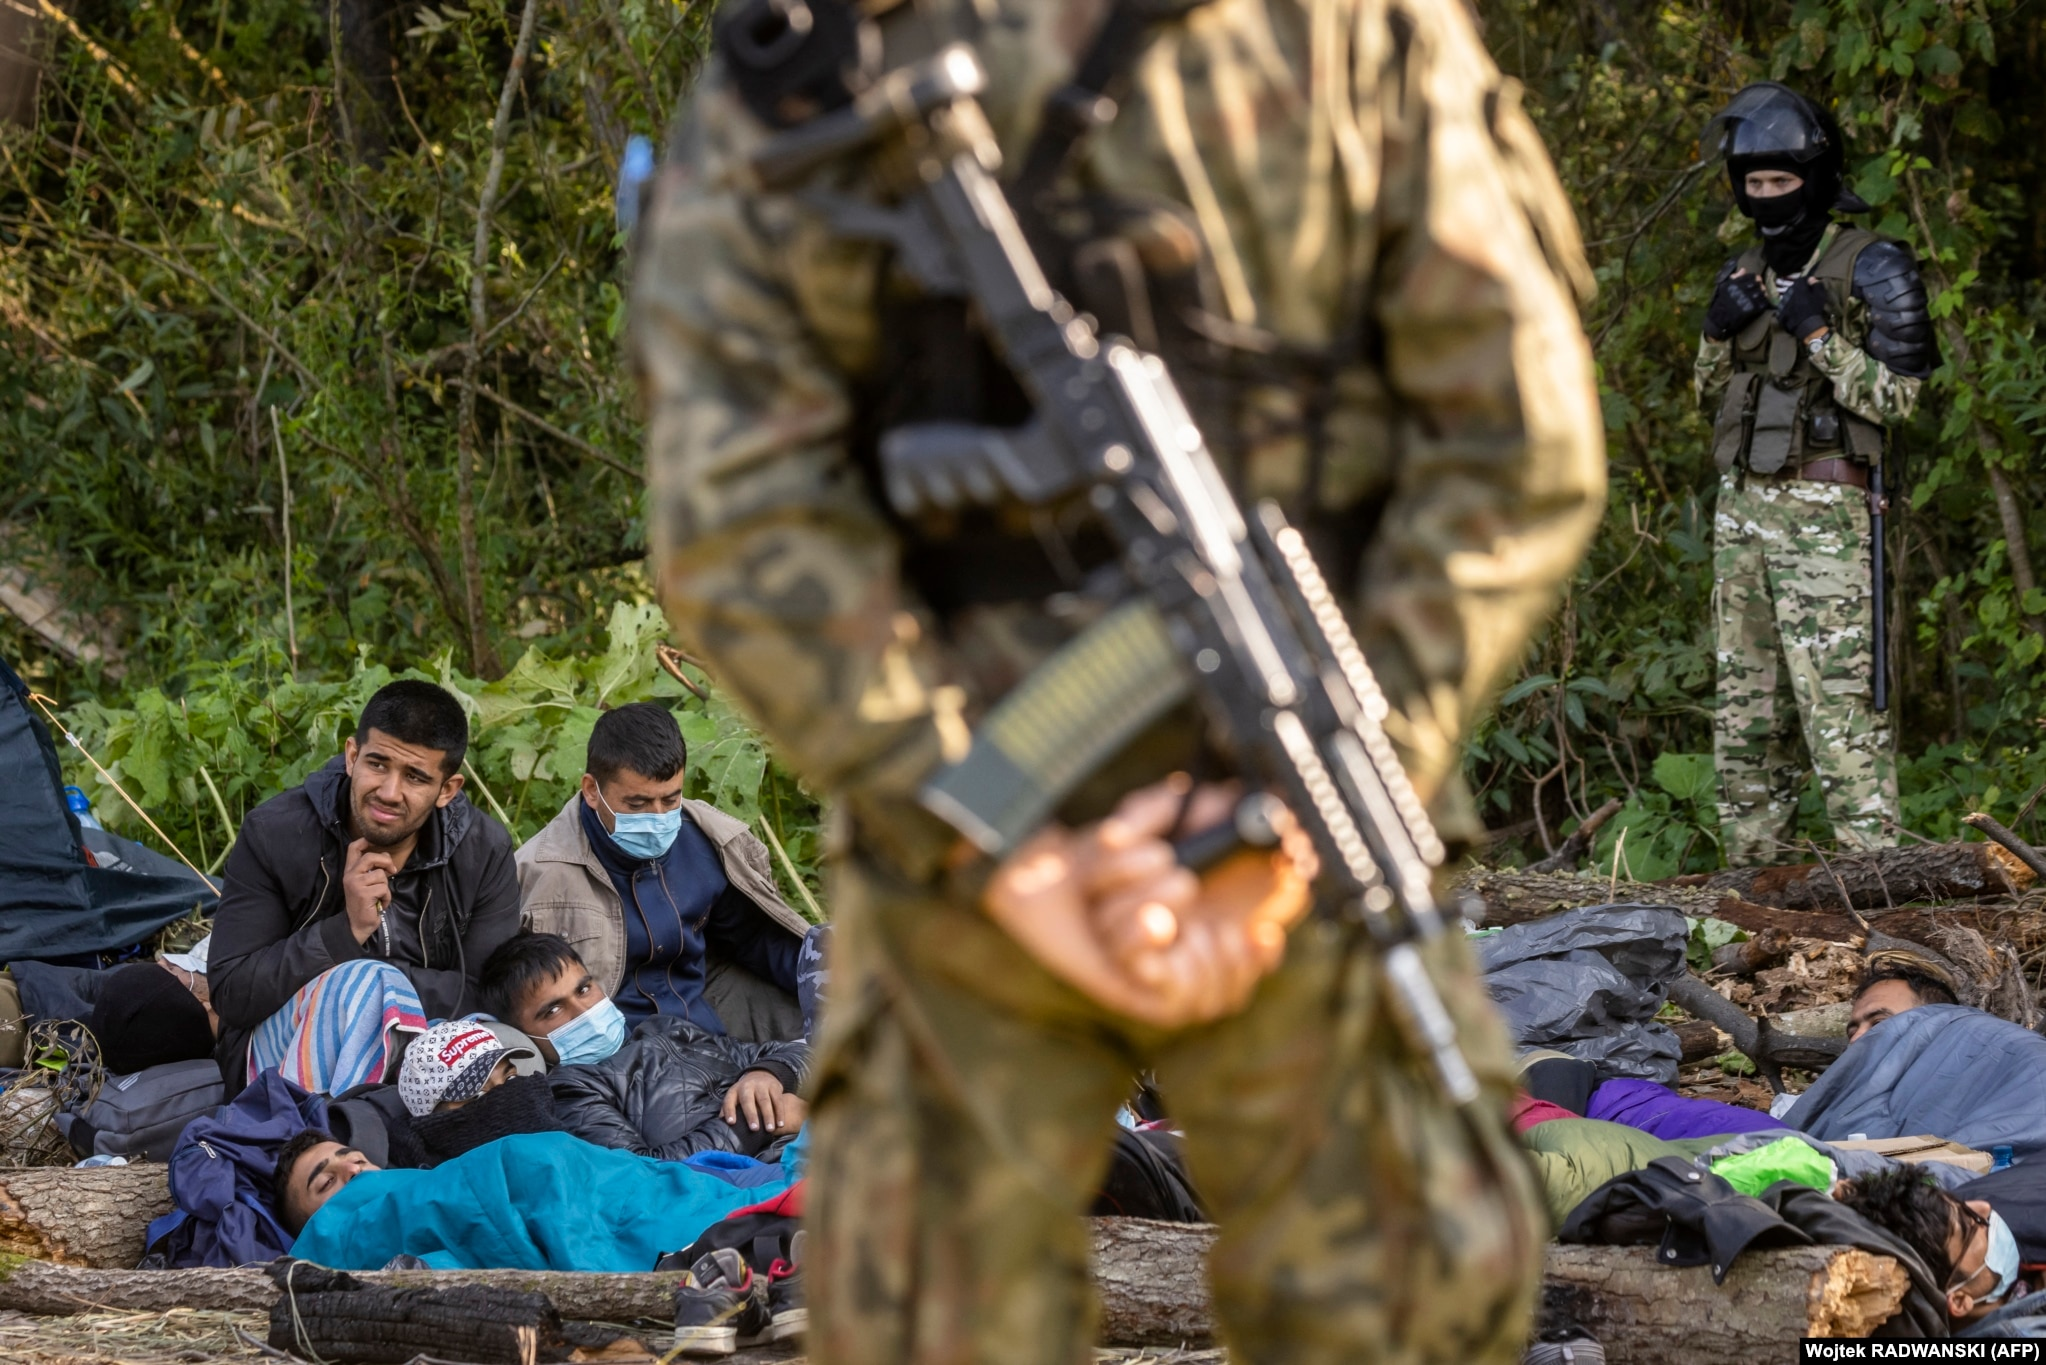 """The stranded migrants photographed on August 20.  Polish Deputy Foreign Minister Marcin Przydacz told reporters that the group near Usnarz Gorny""""are not refugees, they are economic migrants brought in by the Belarusian government."""""""